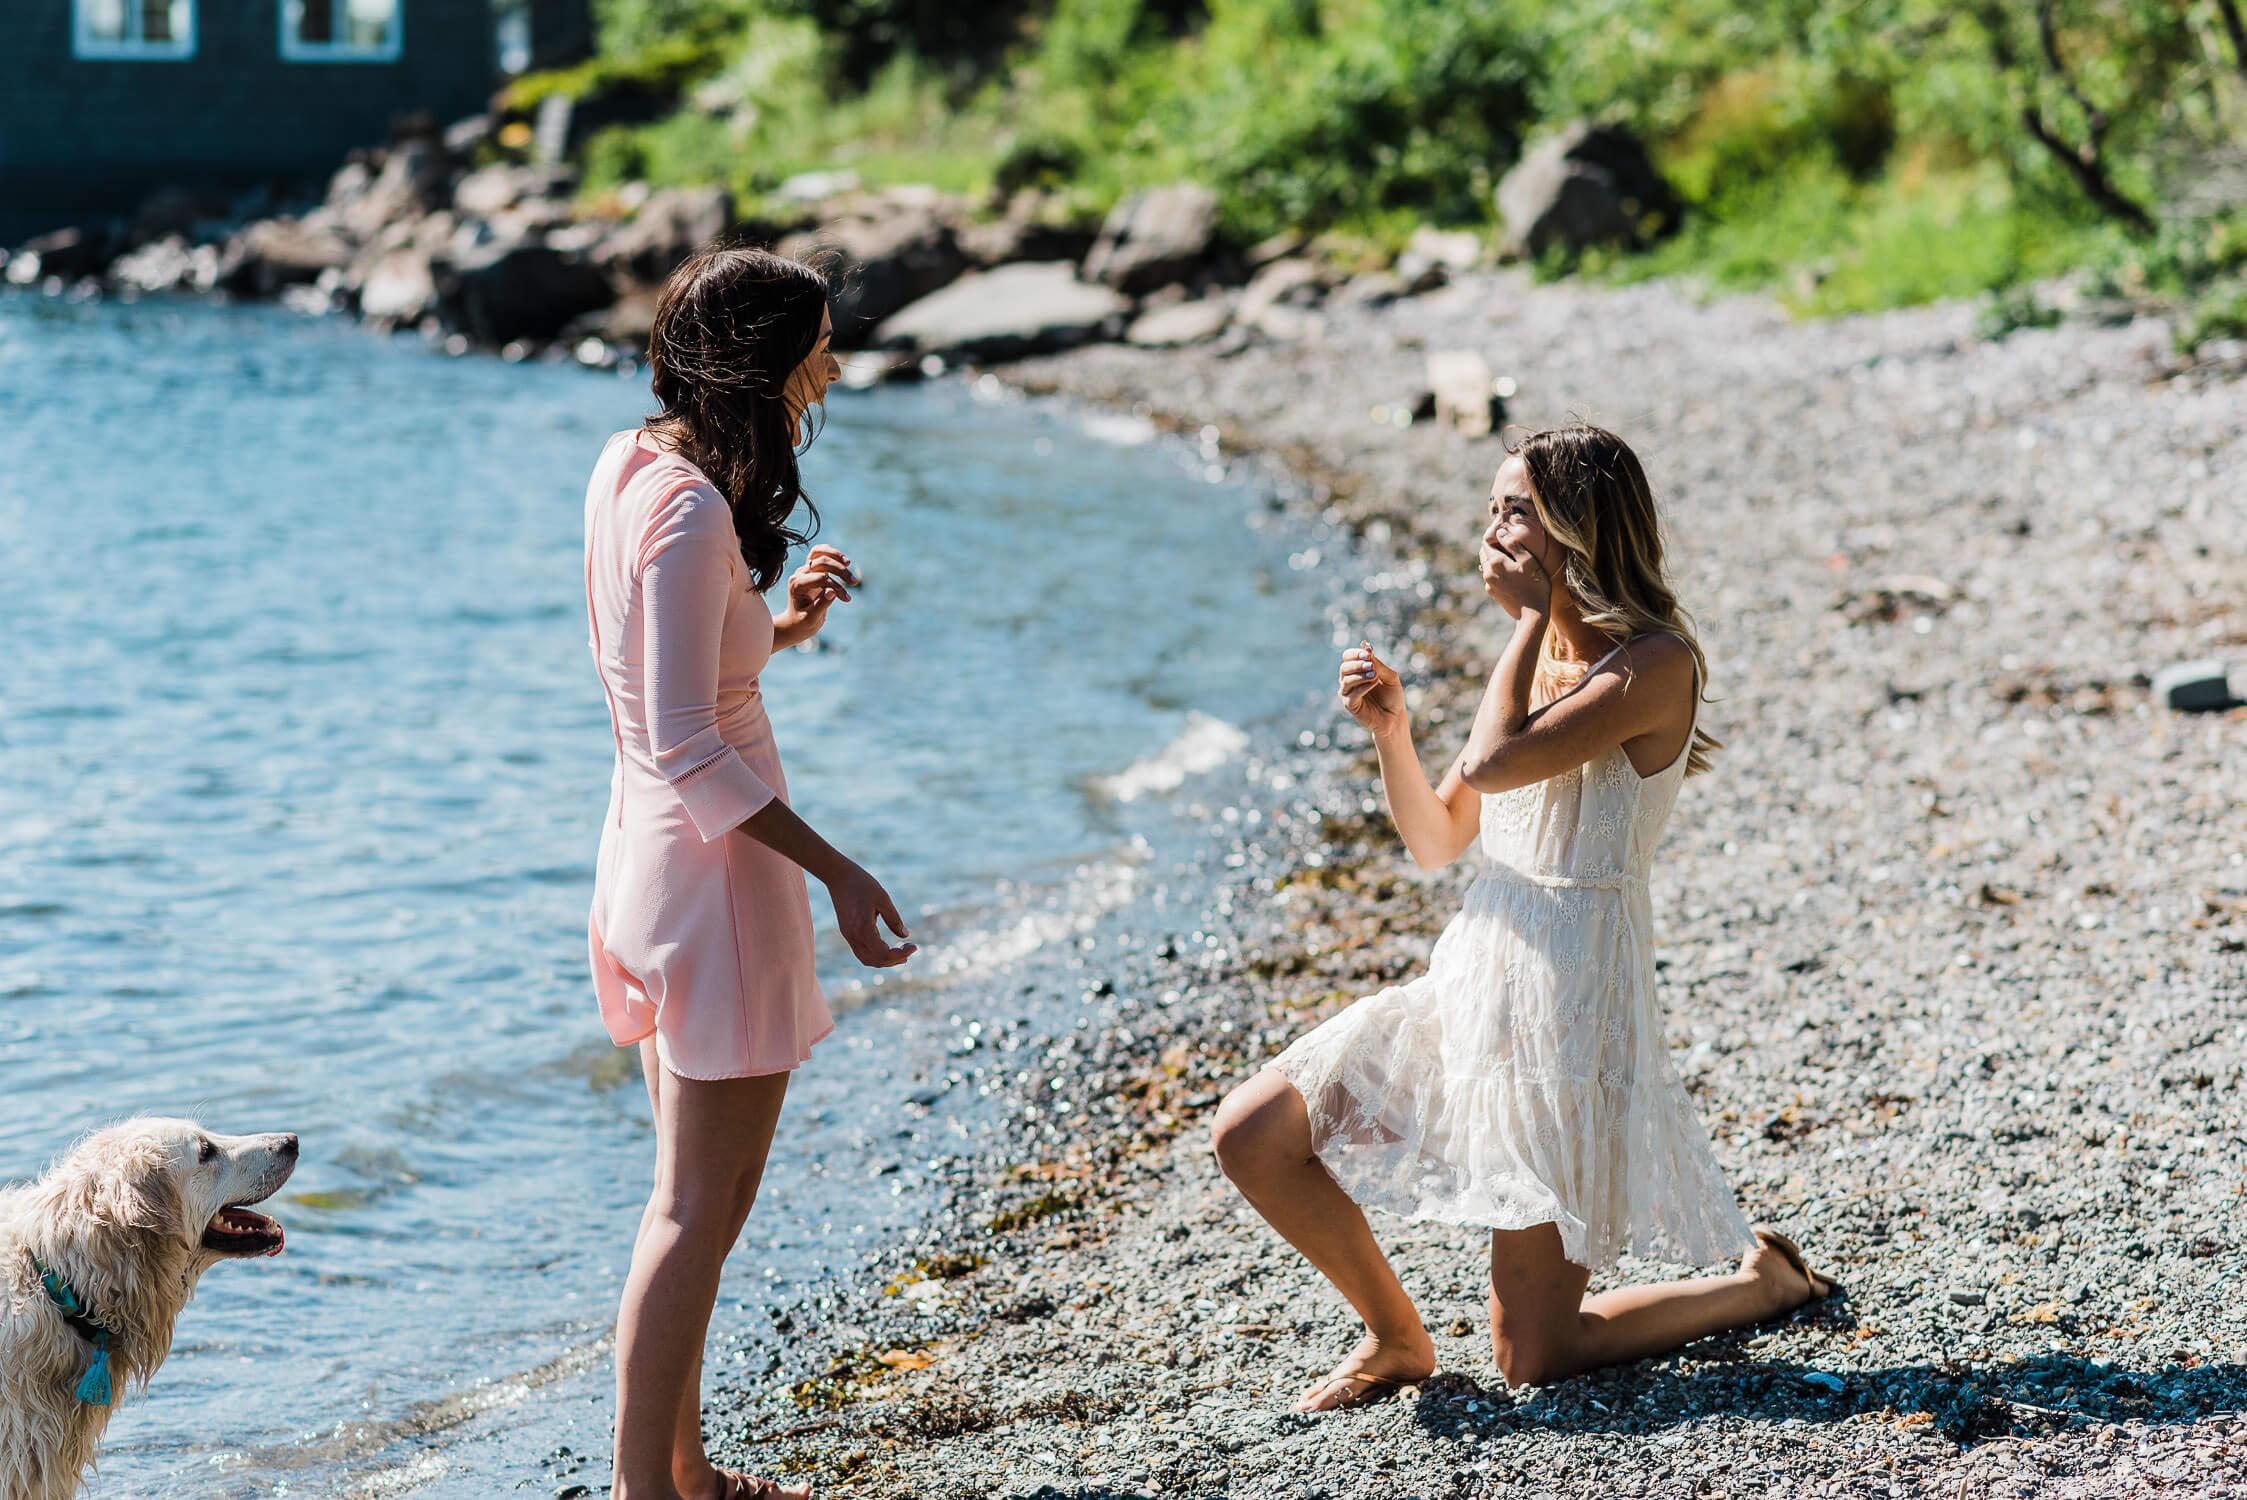 Woman proposes to her girlfriend at the park beach